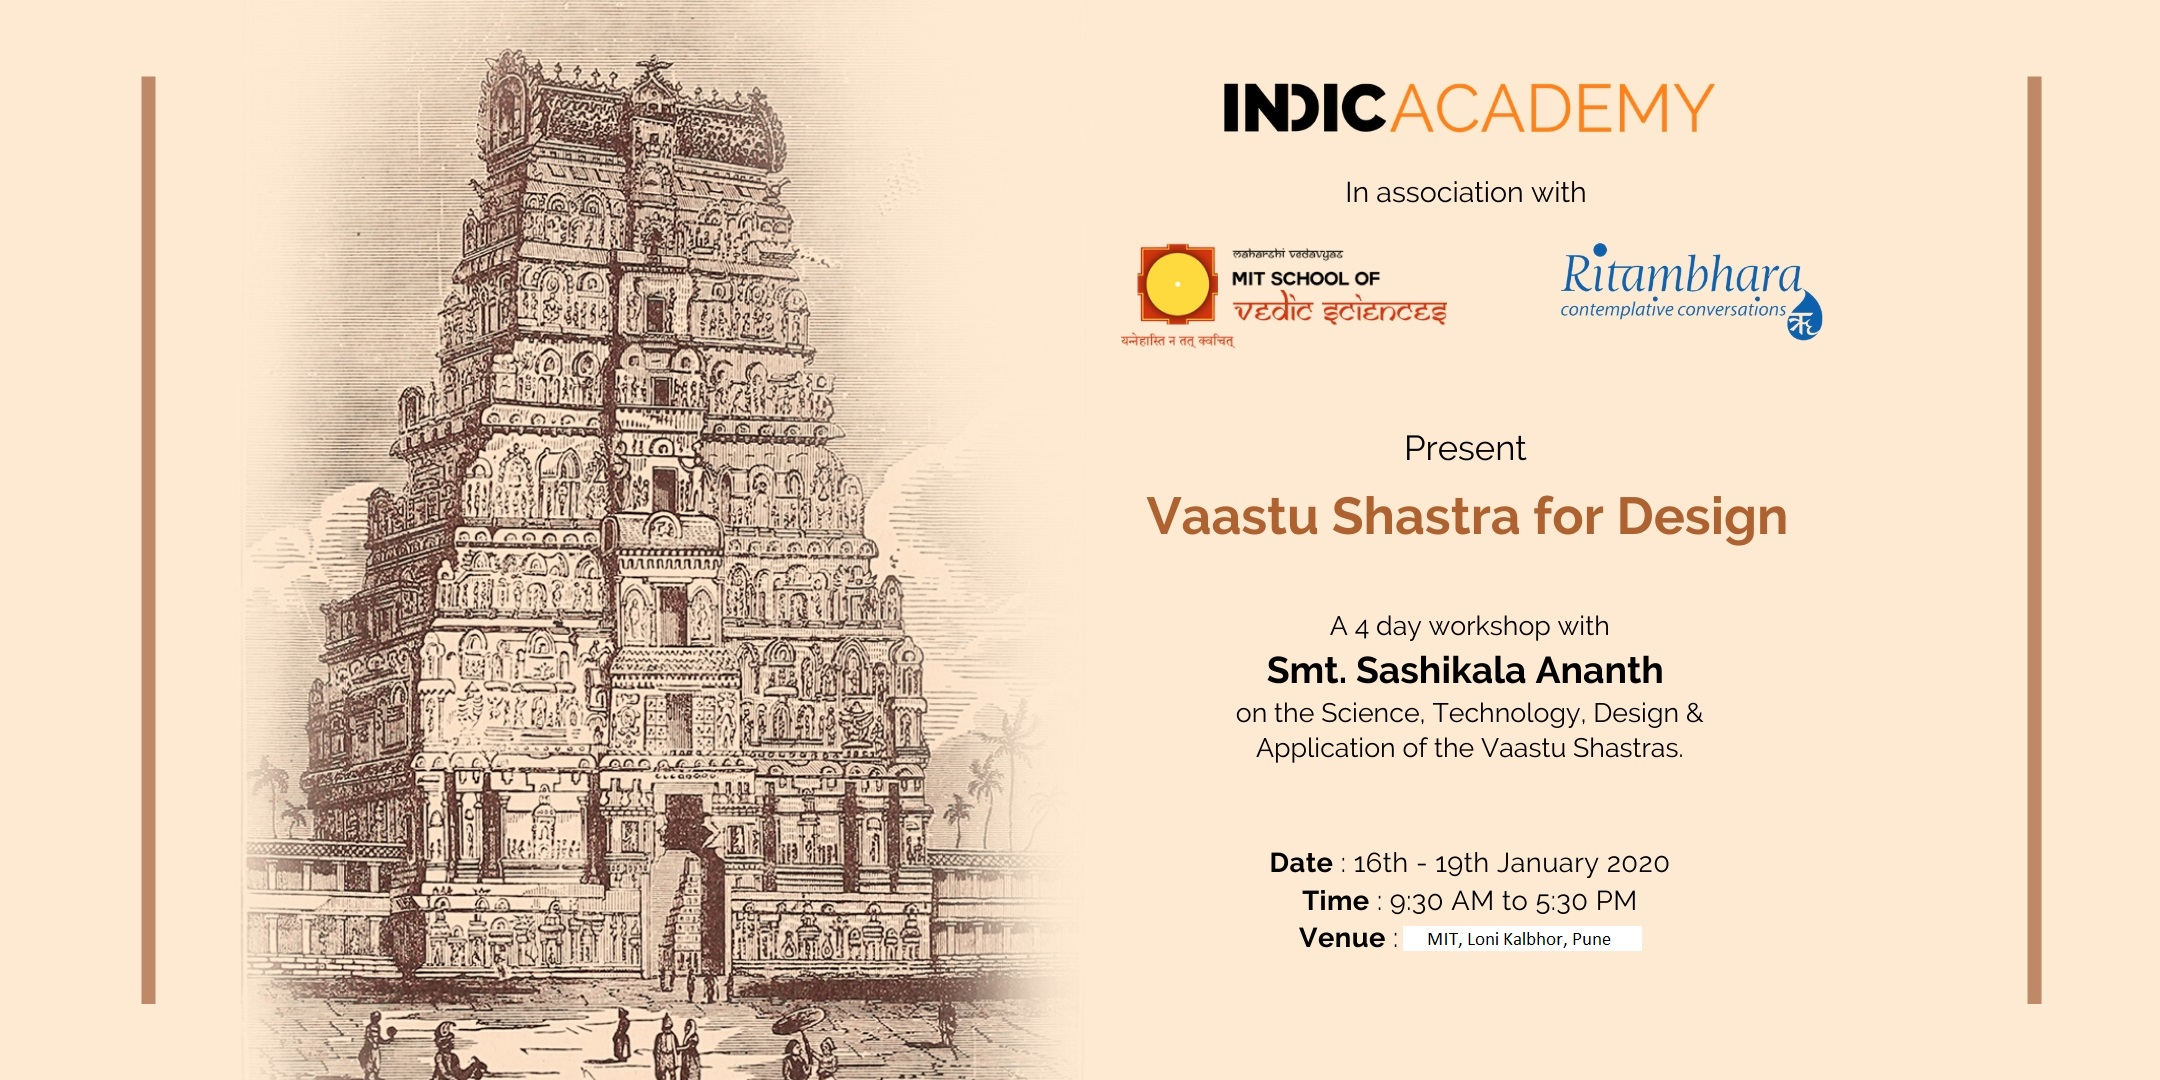 Pune Workshop on Vaastu Shastra